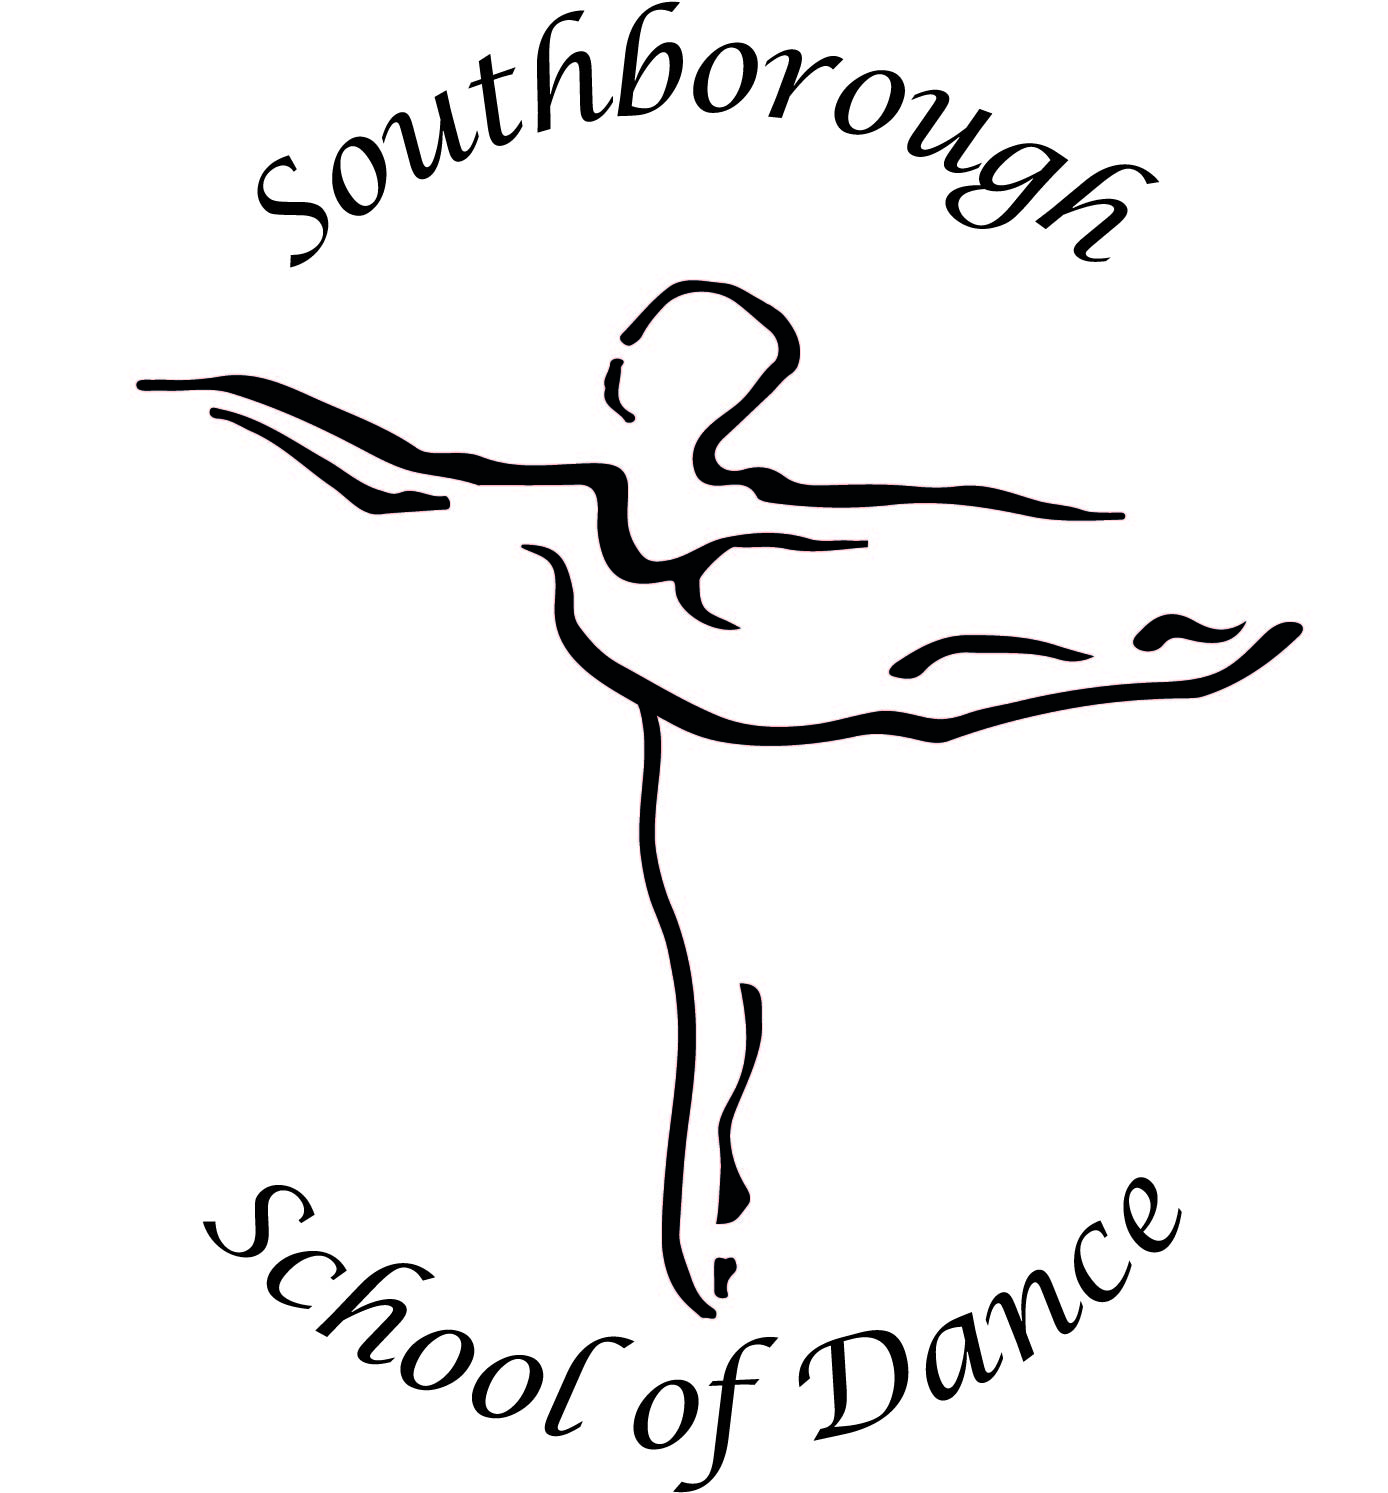 Southborough School of Dance